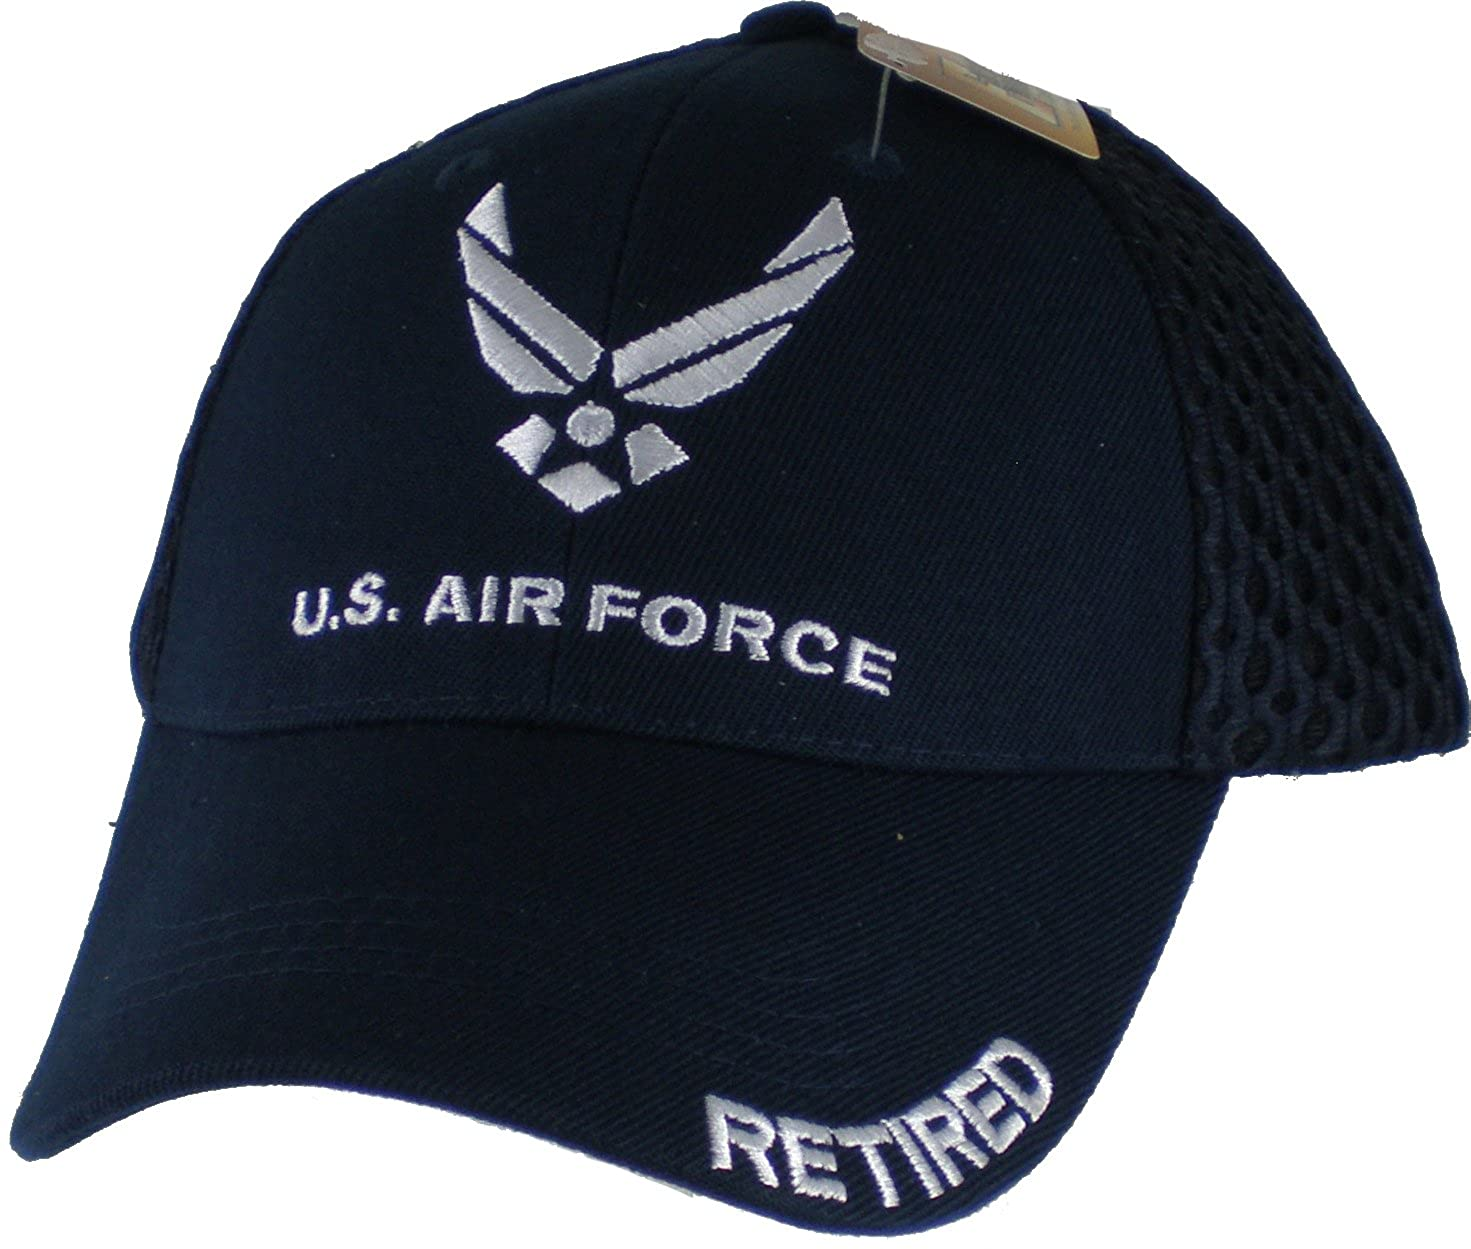 75809b623ca U air force retired mesh cap navy blue clothing jpg 1471x1249 Air force  retired hat